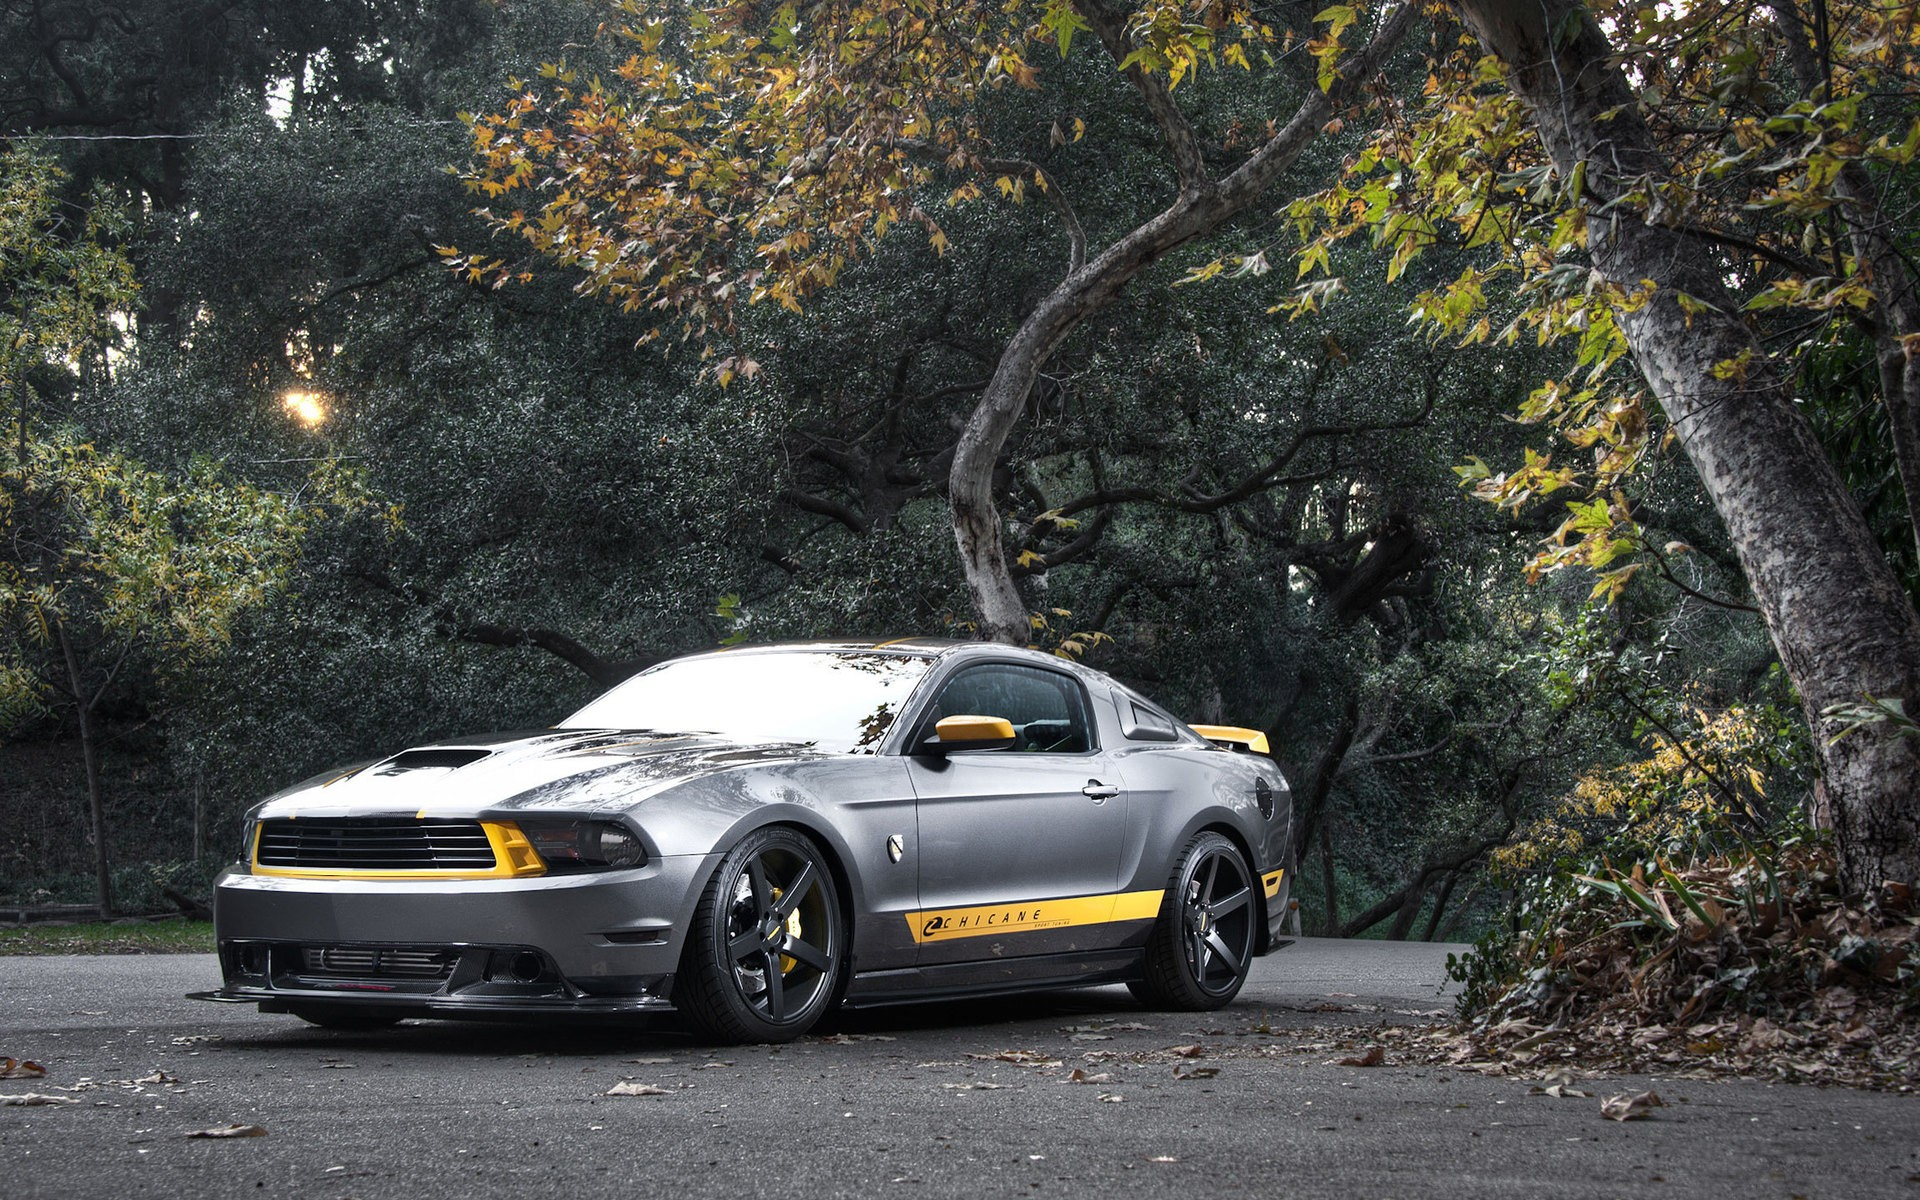 2560x1440 Ford Mustang Custom 1440p Resolution Hd 4k Wallpapers